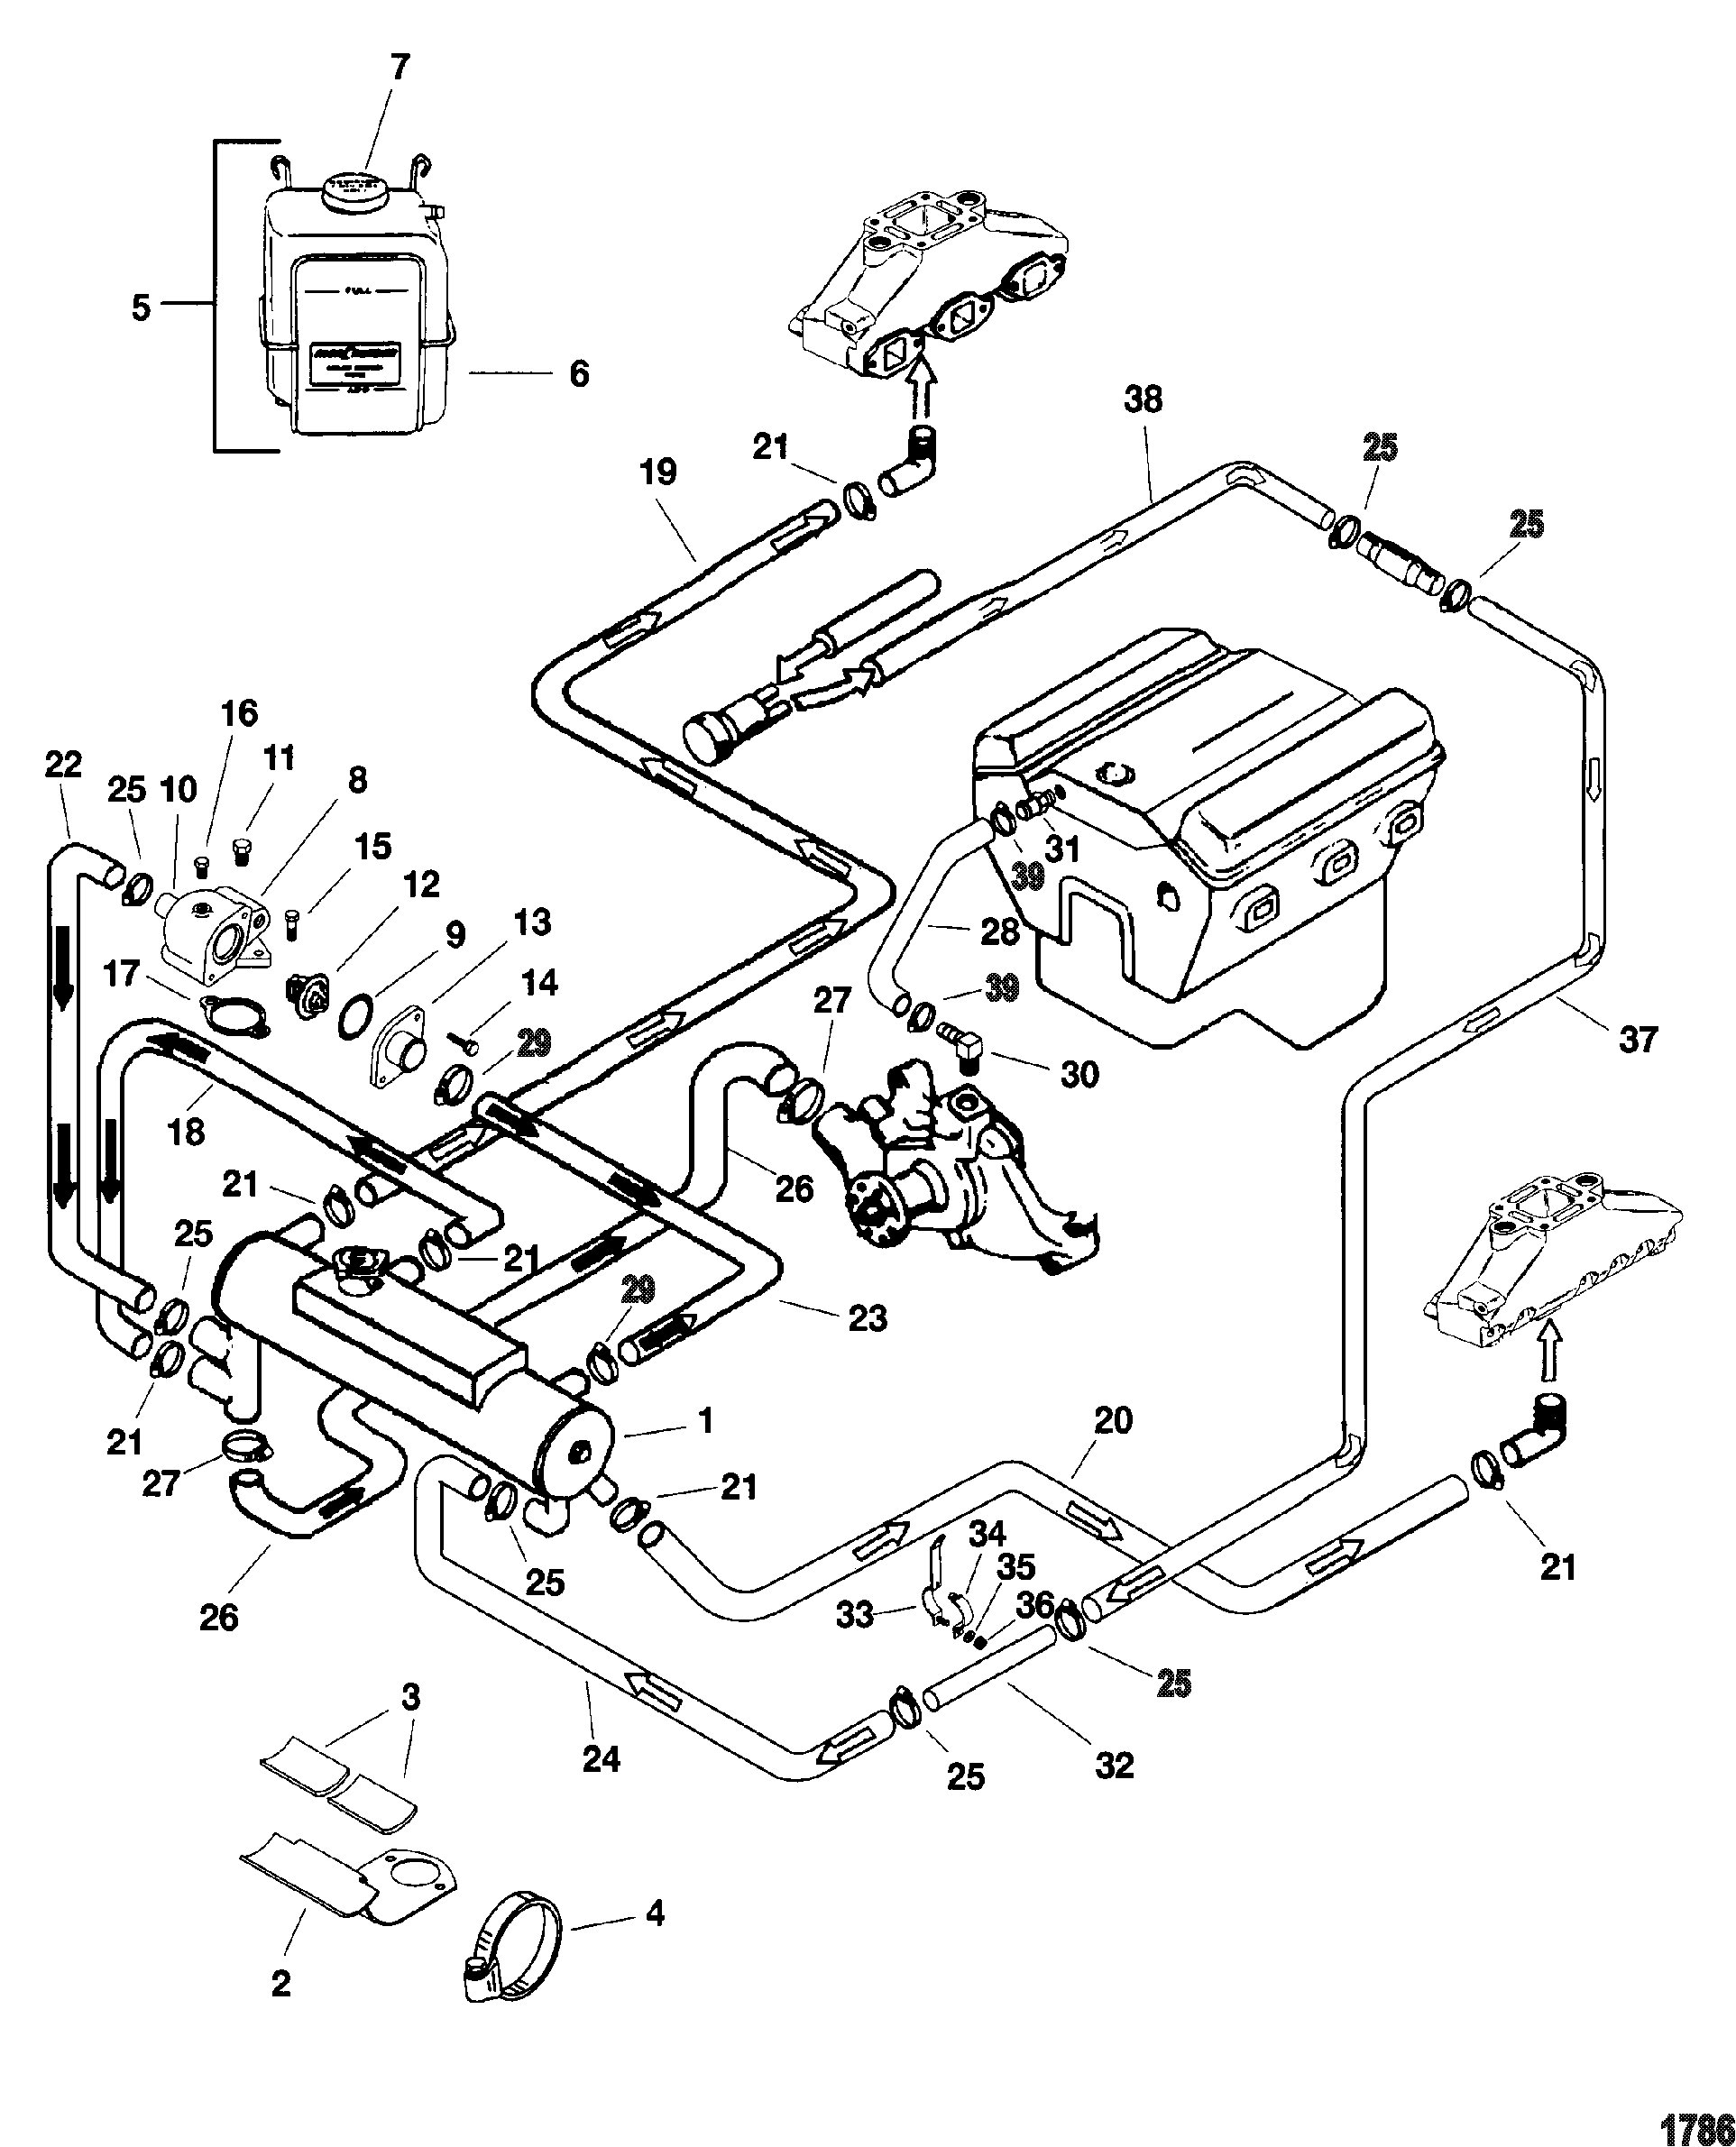 P0496 besides Voltage Regulator Wiring Diagram Kubota besides 371378585445 further P 0900c15280080e8b likewise Ford Alternator Wiring Diagrams. on gm fuel system diagram